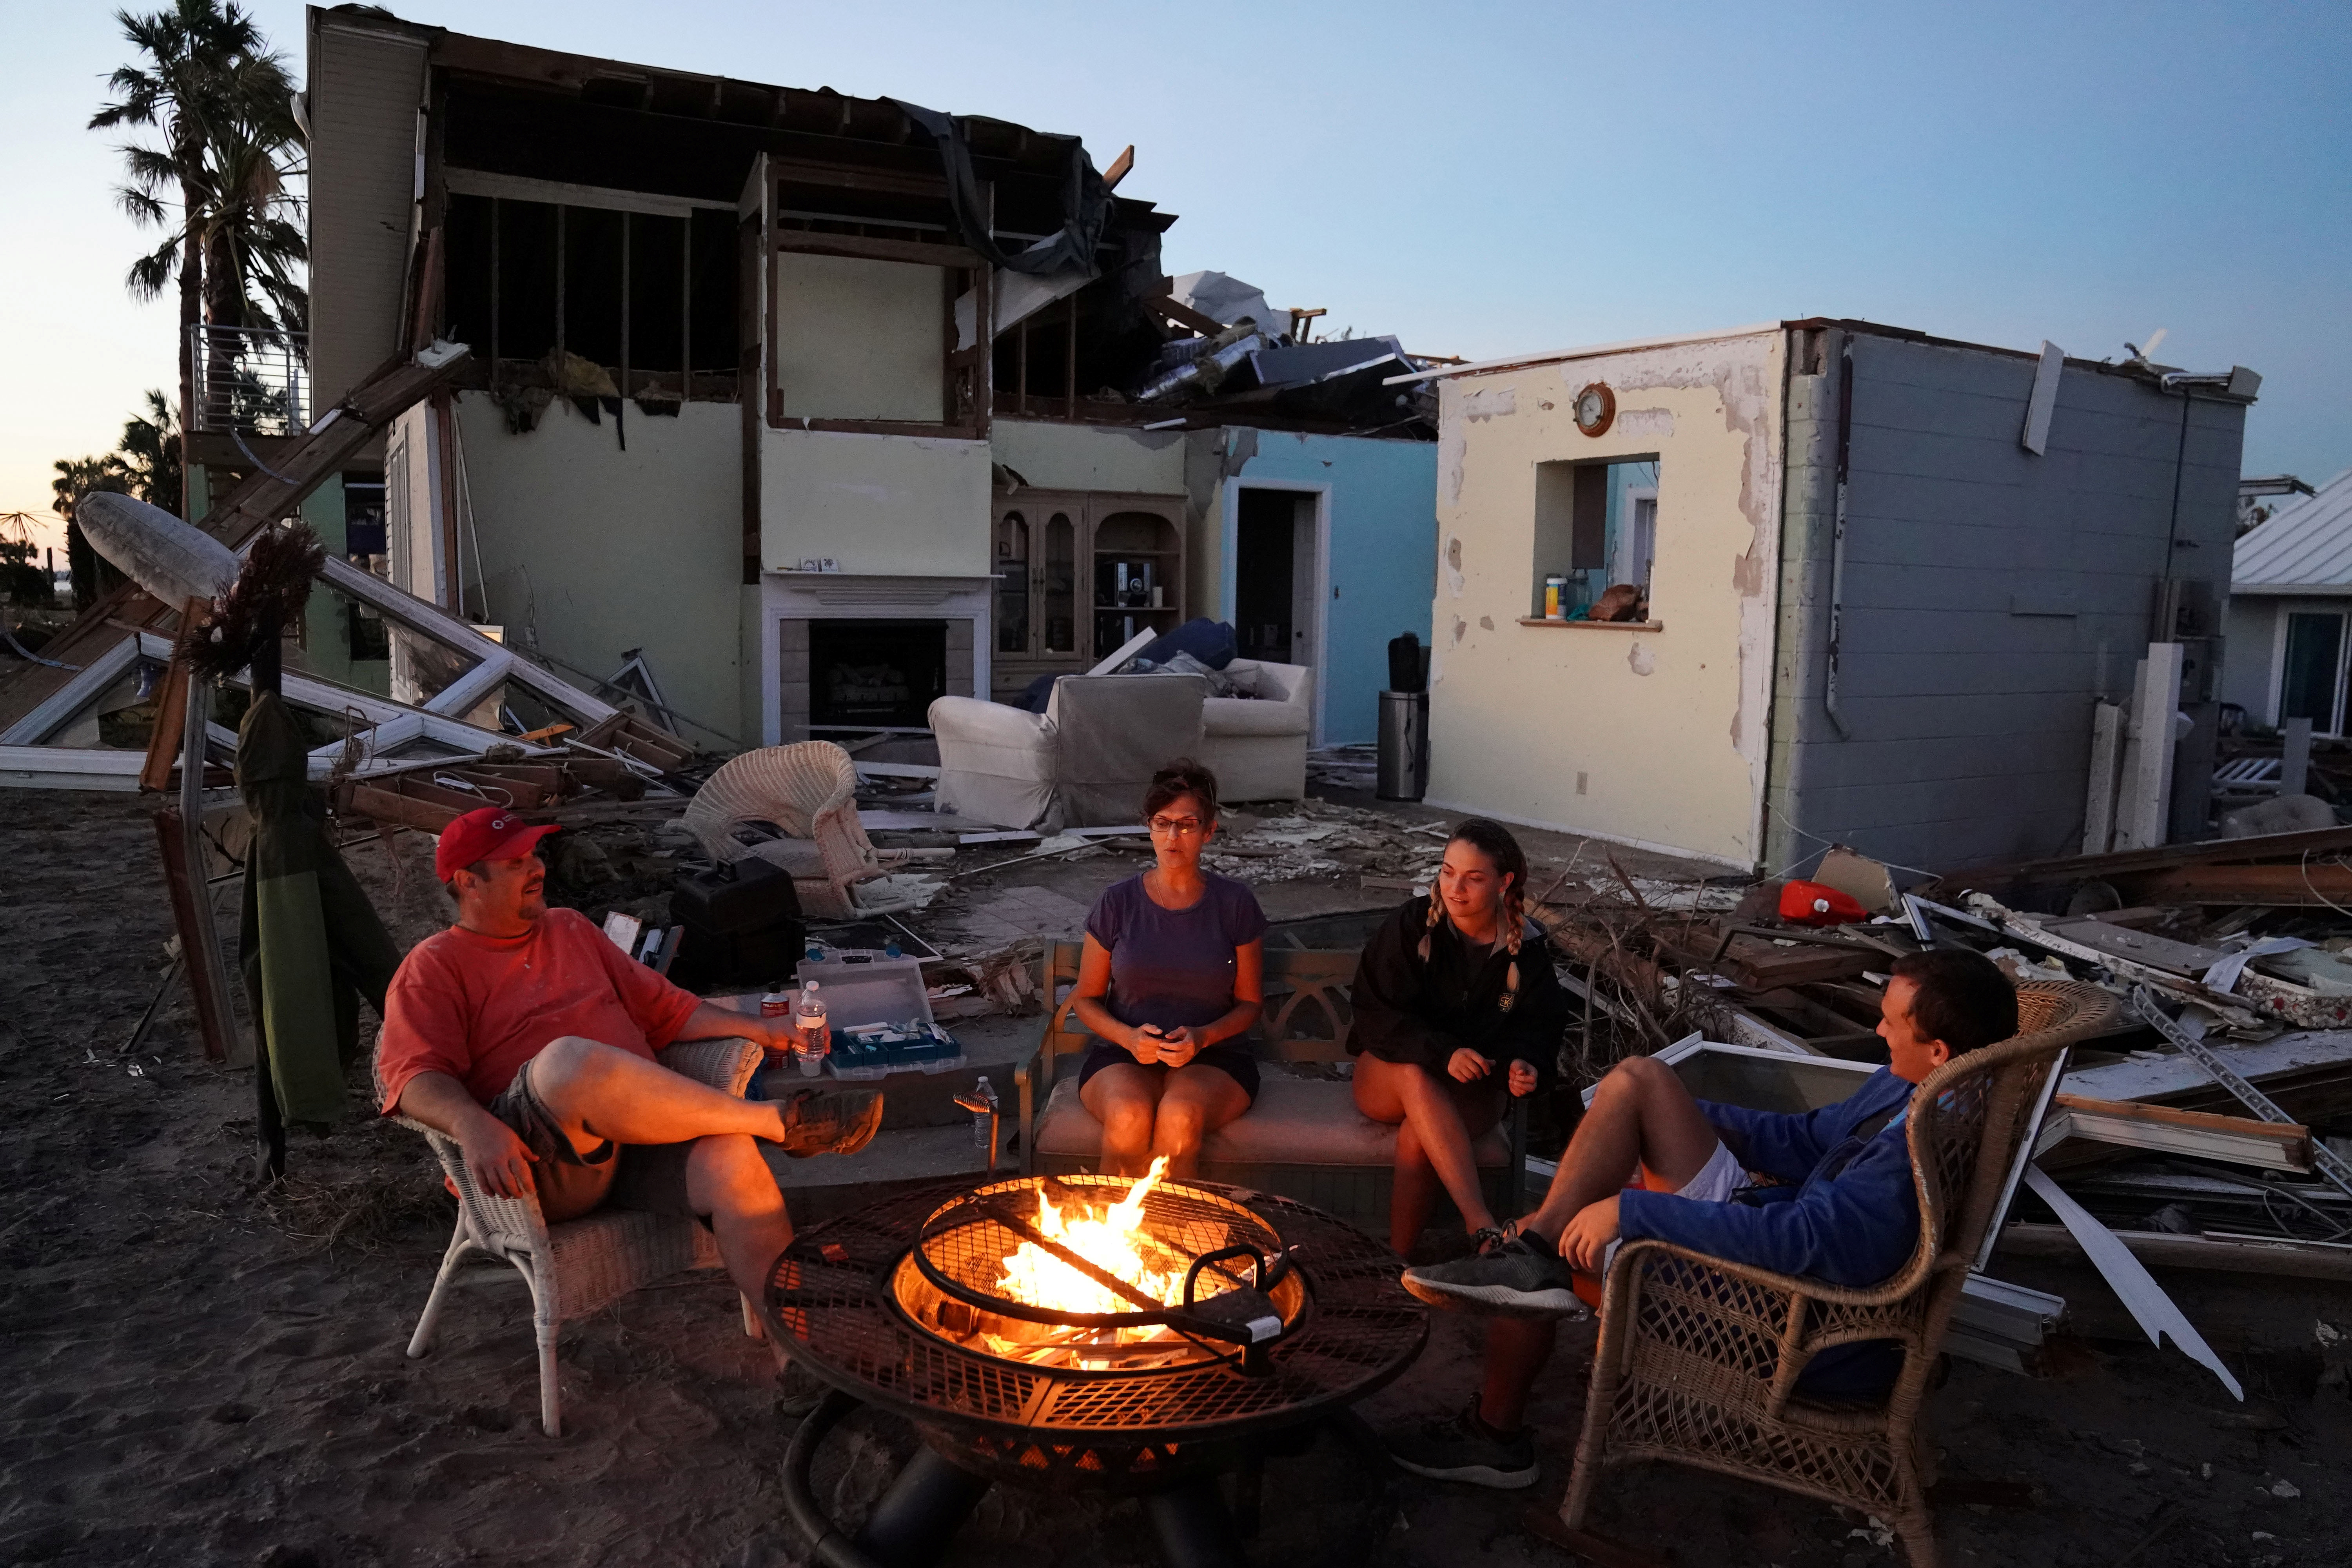 A family sits by a fire and prepares to eat a dinner of MREs in front of their house with no roof following Hurricane Michael in Mexico Beach, Florida